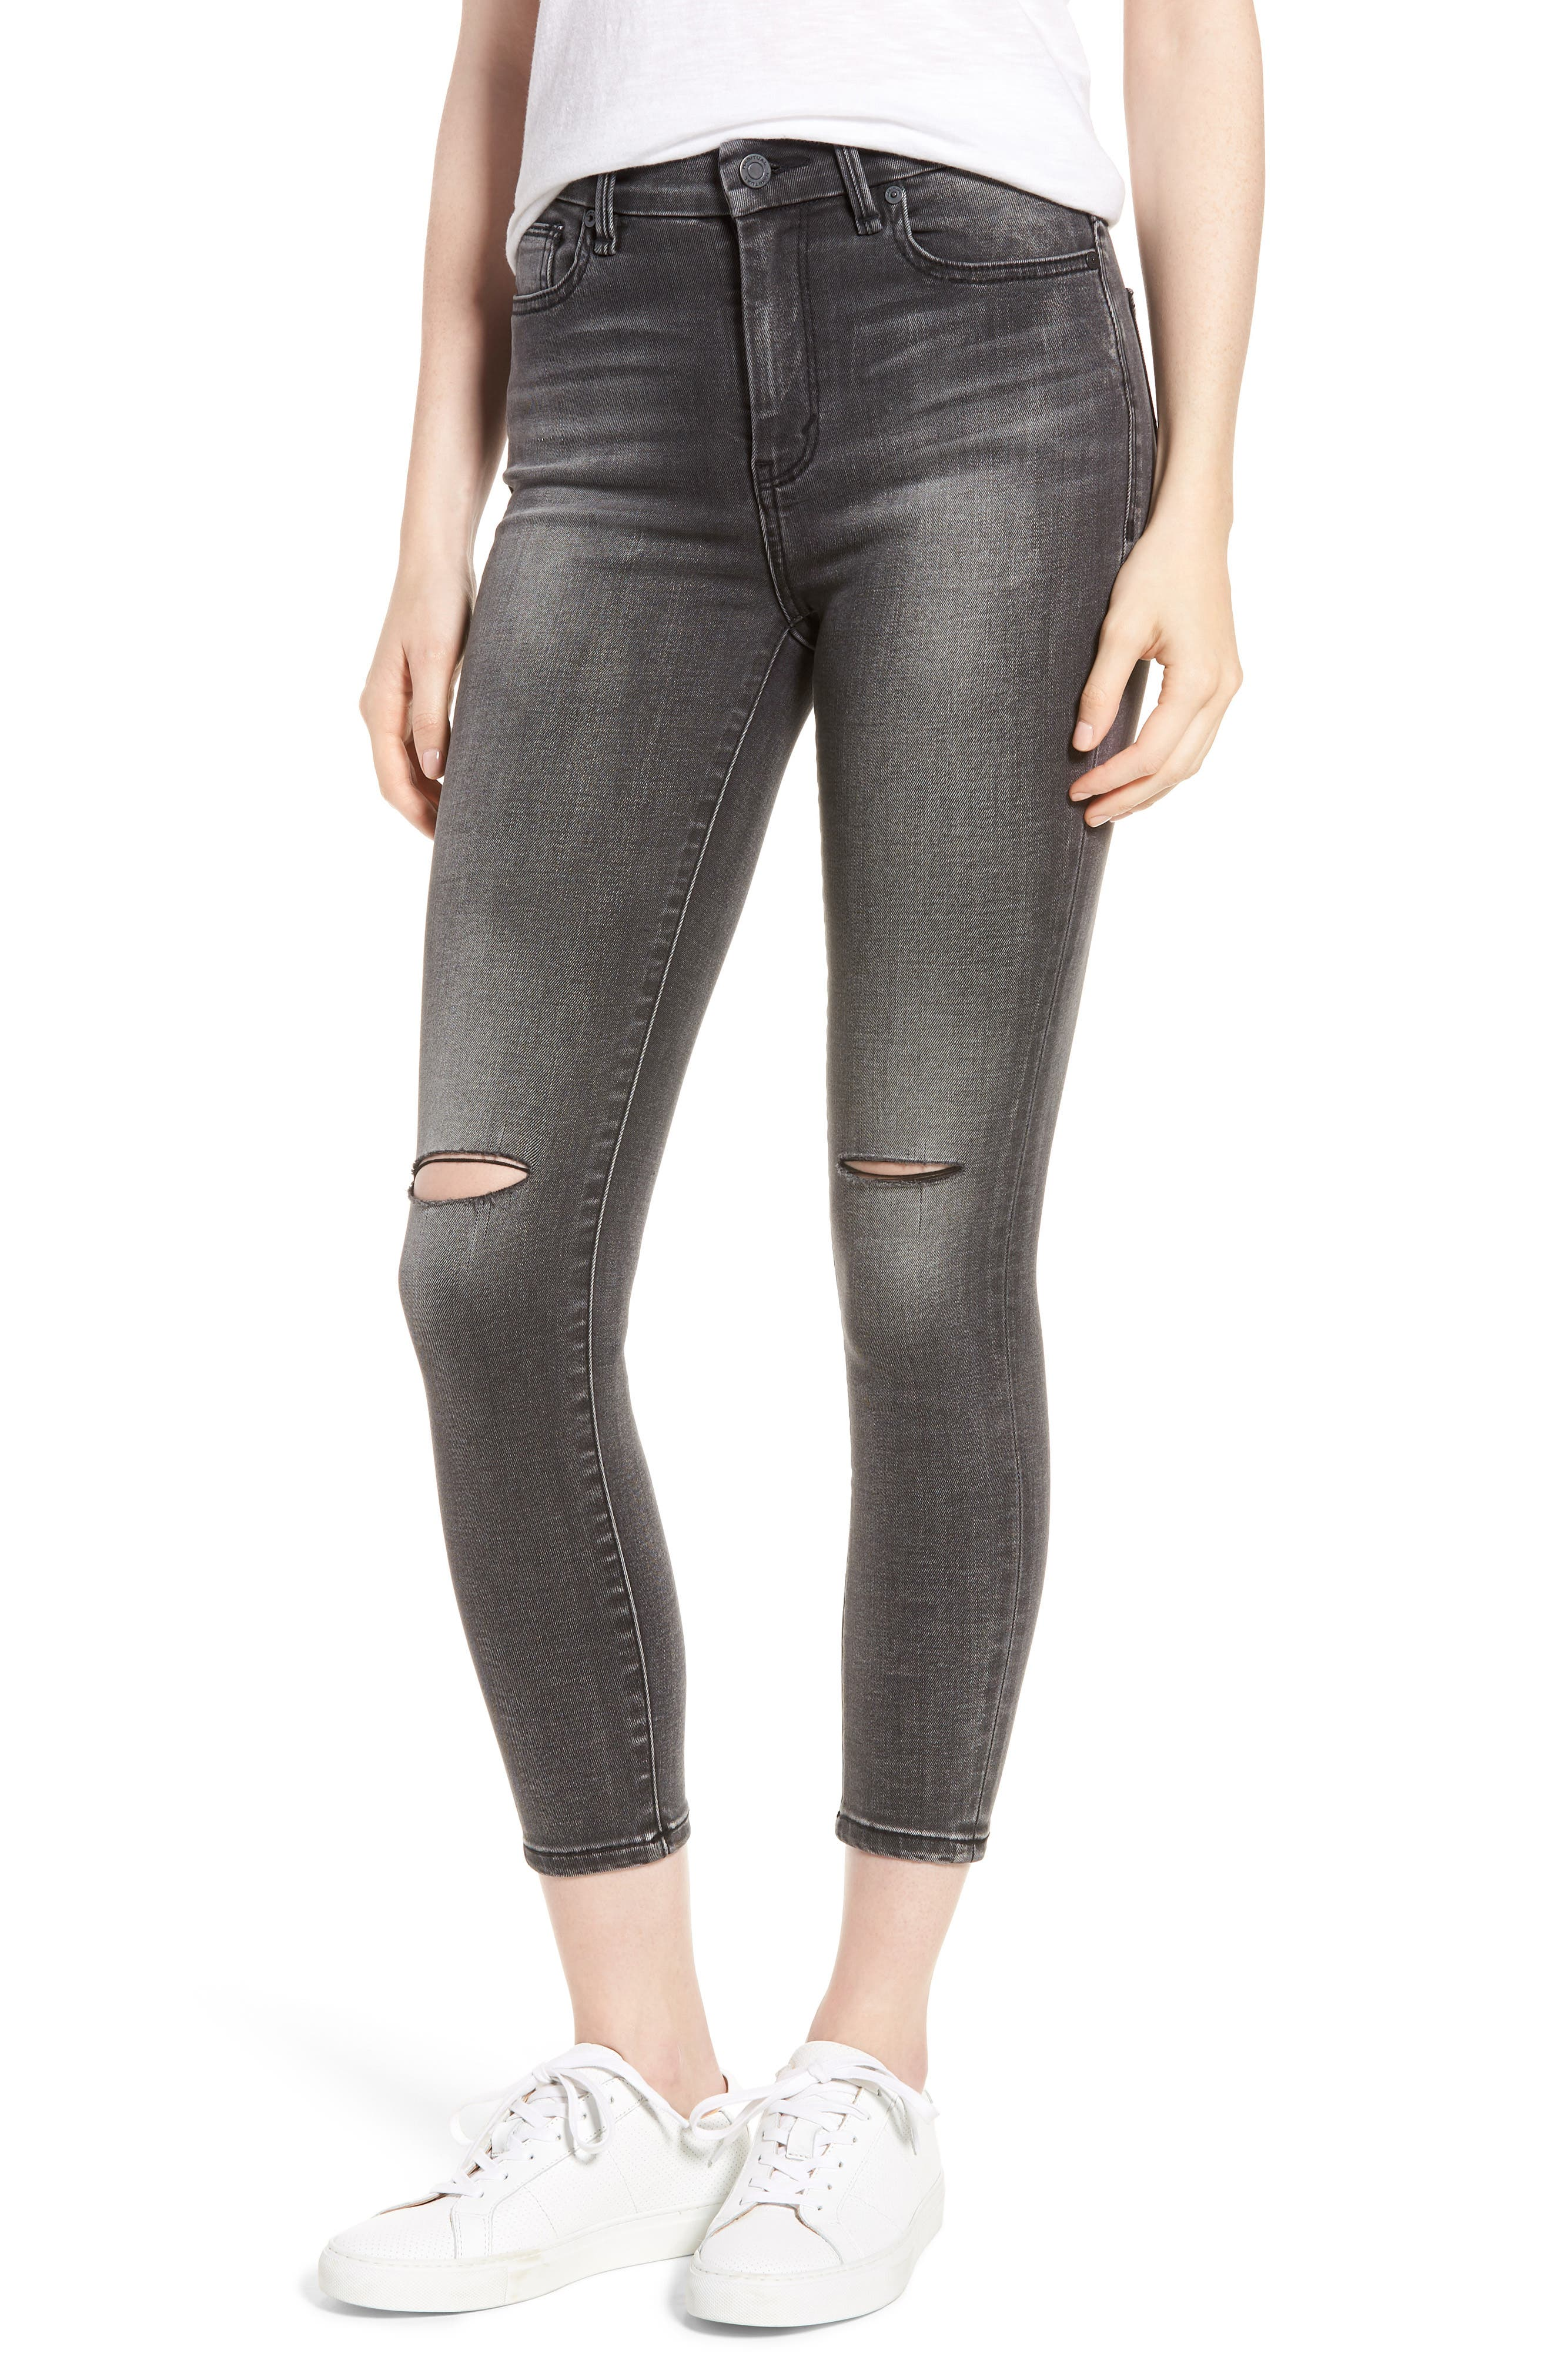 Cressa High Rise Ankle Skinny Jeans,                             Main thumbnail 1, color,                             Obsidian